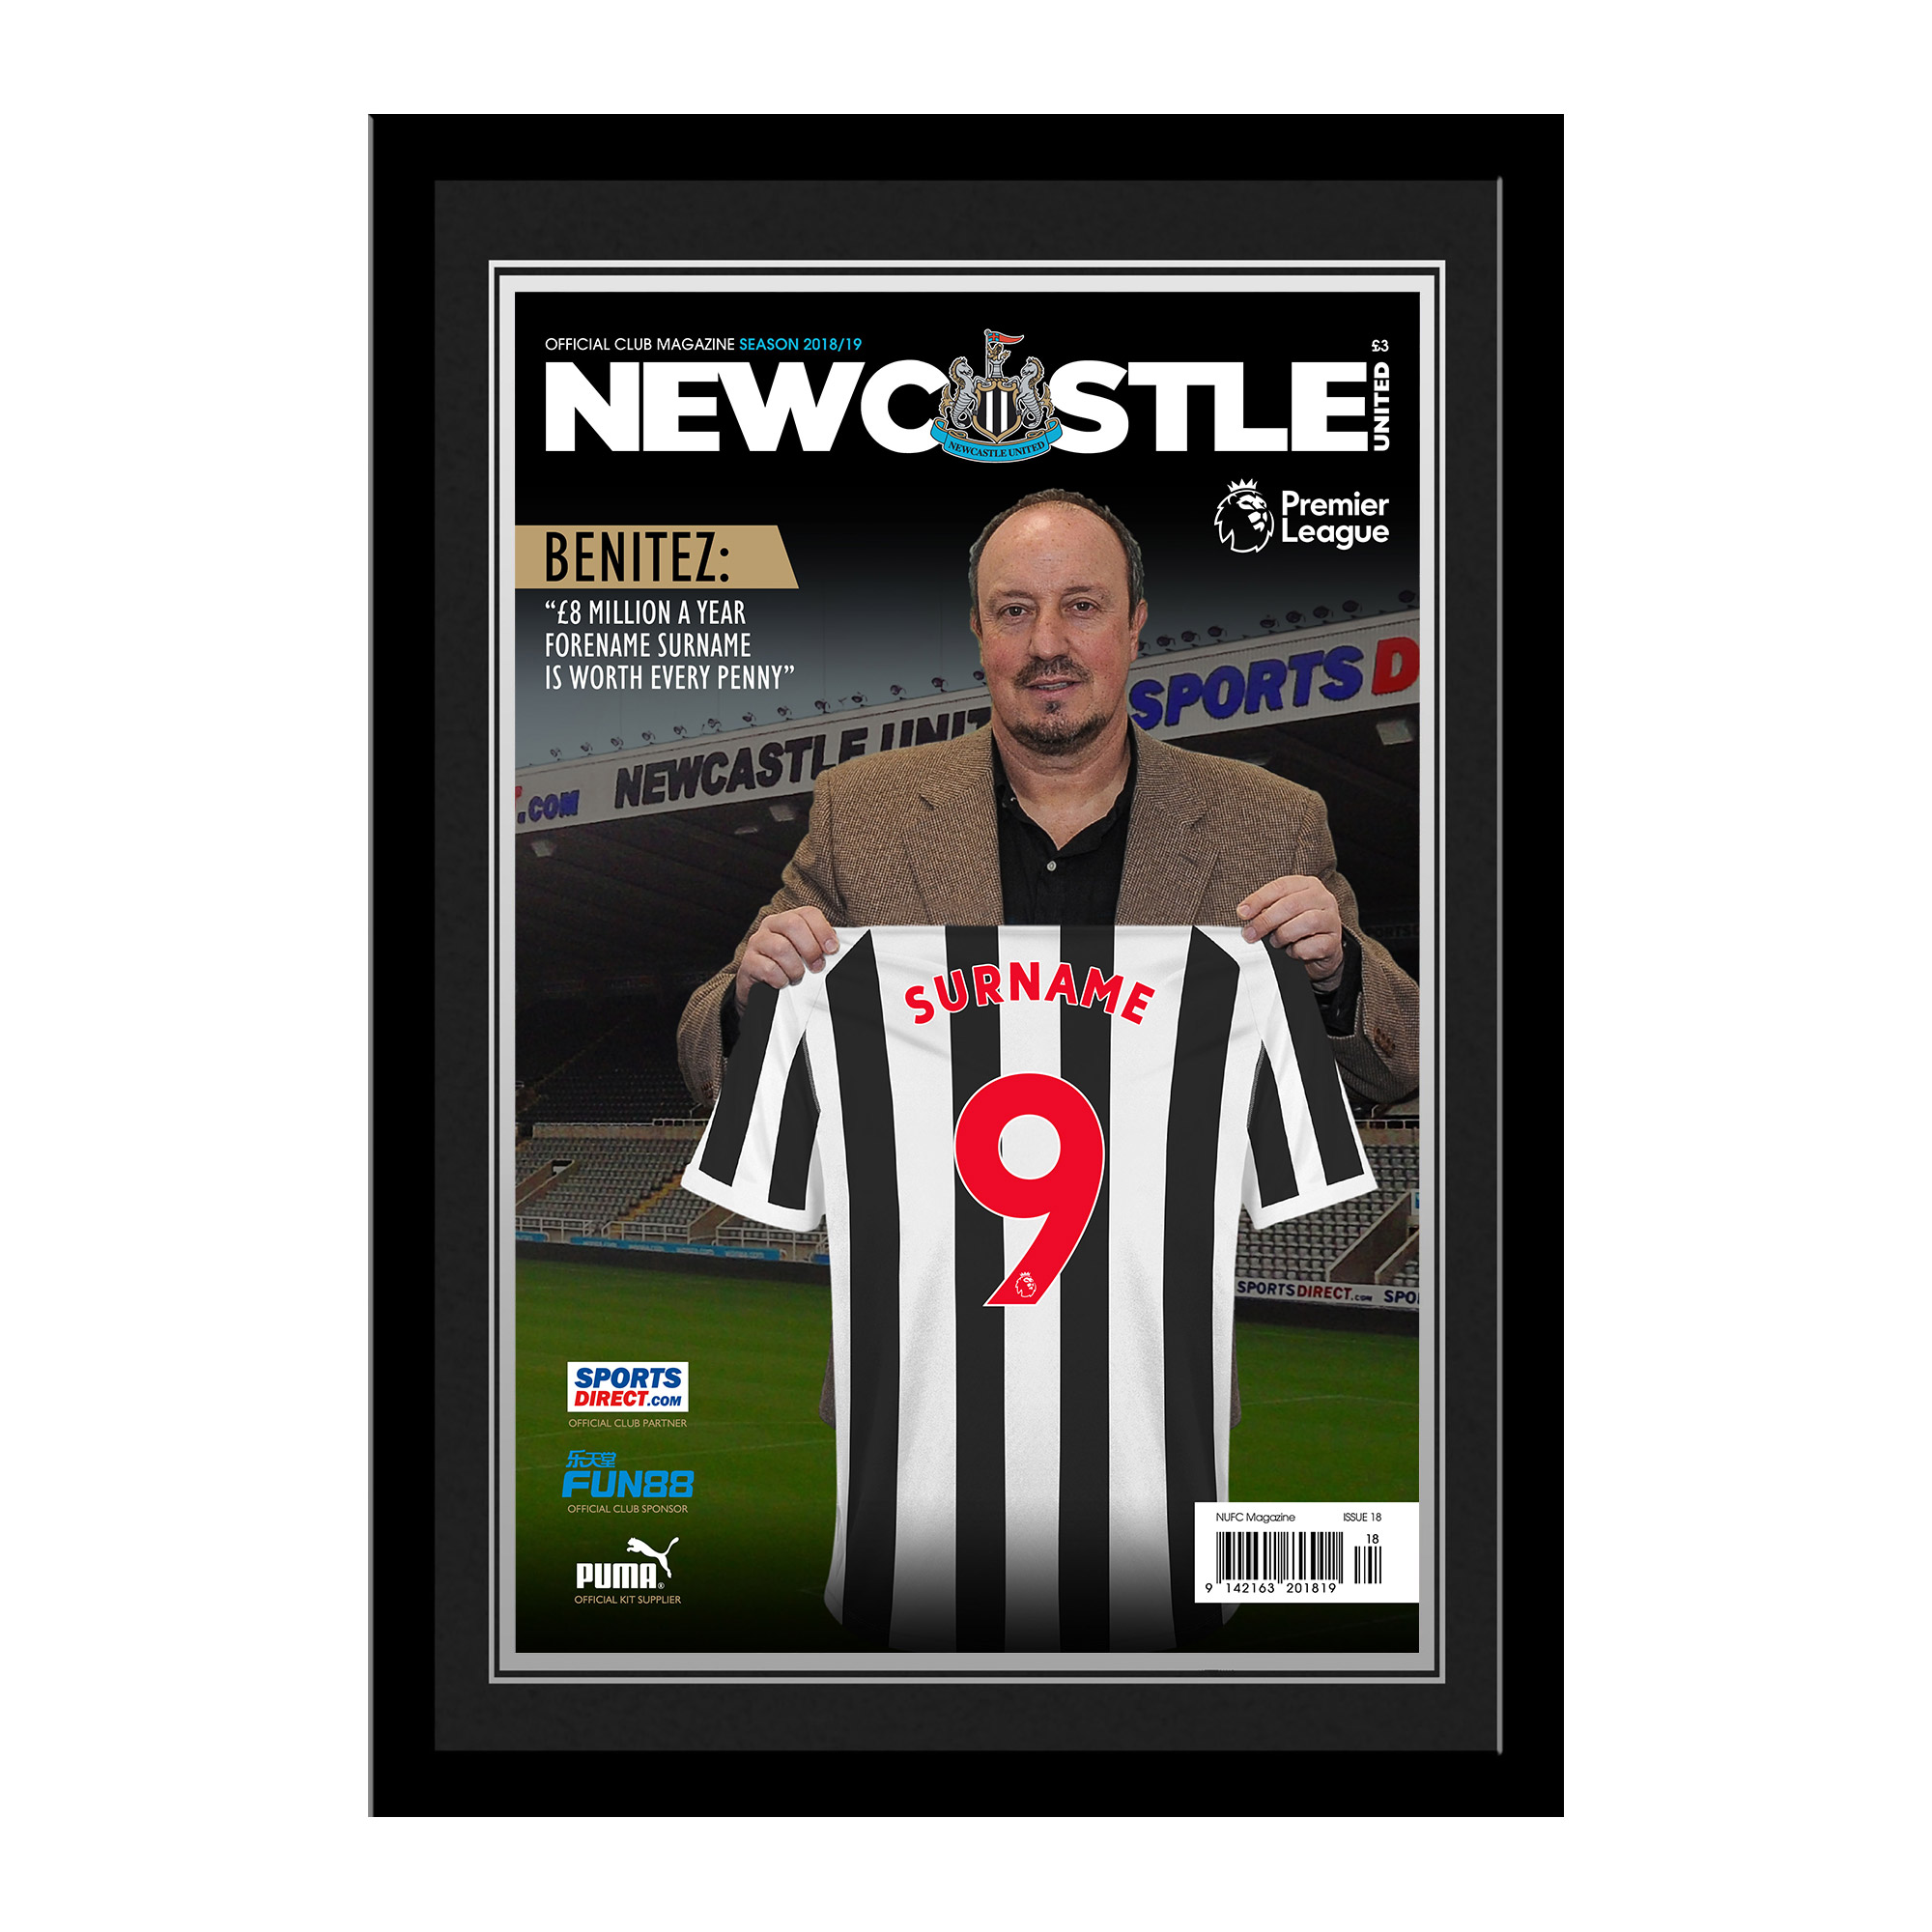 Newcastle United FC Magazine Front Cover Photo Framed